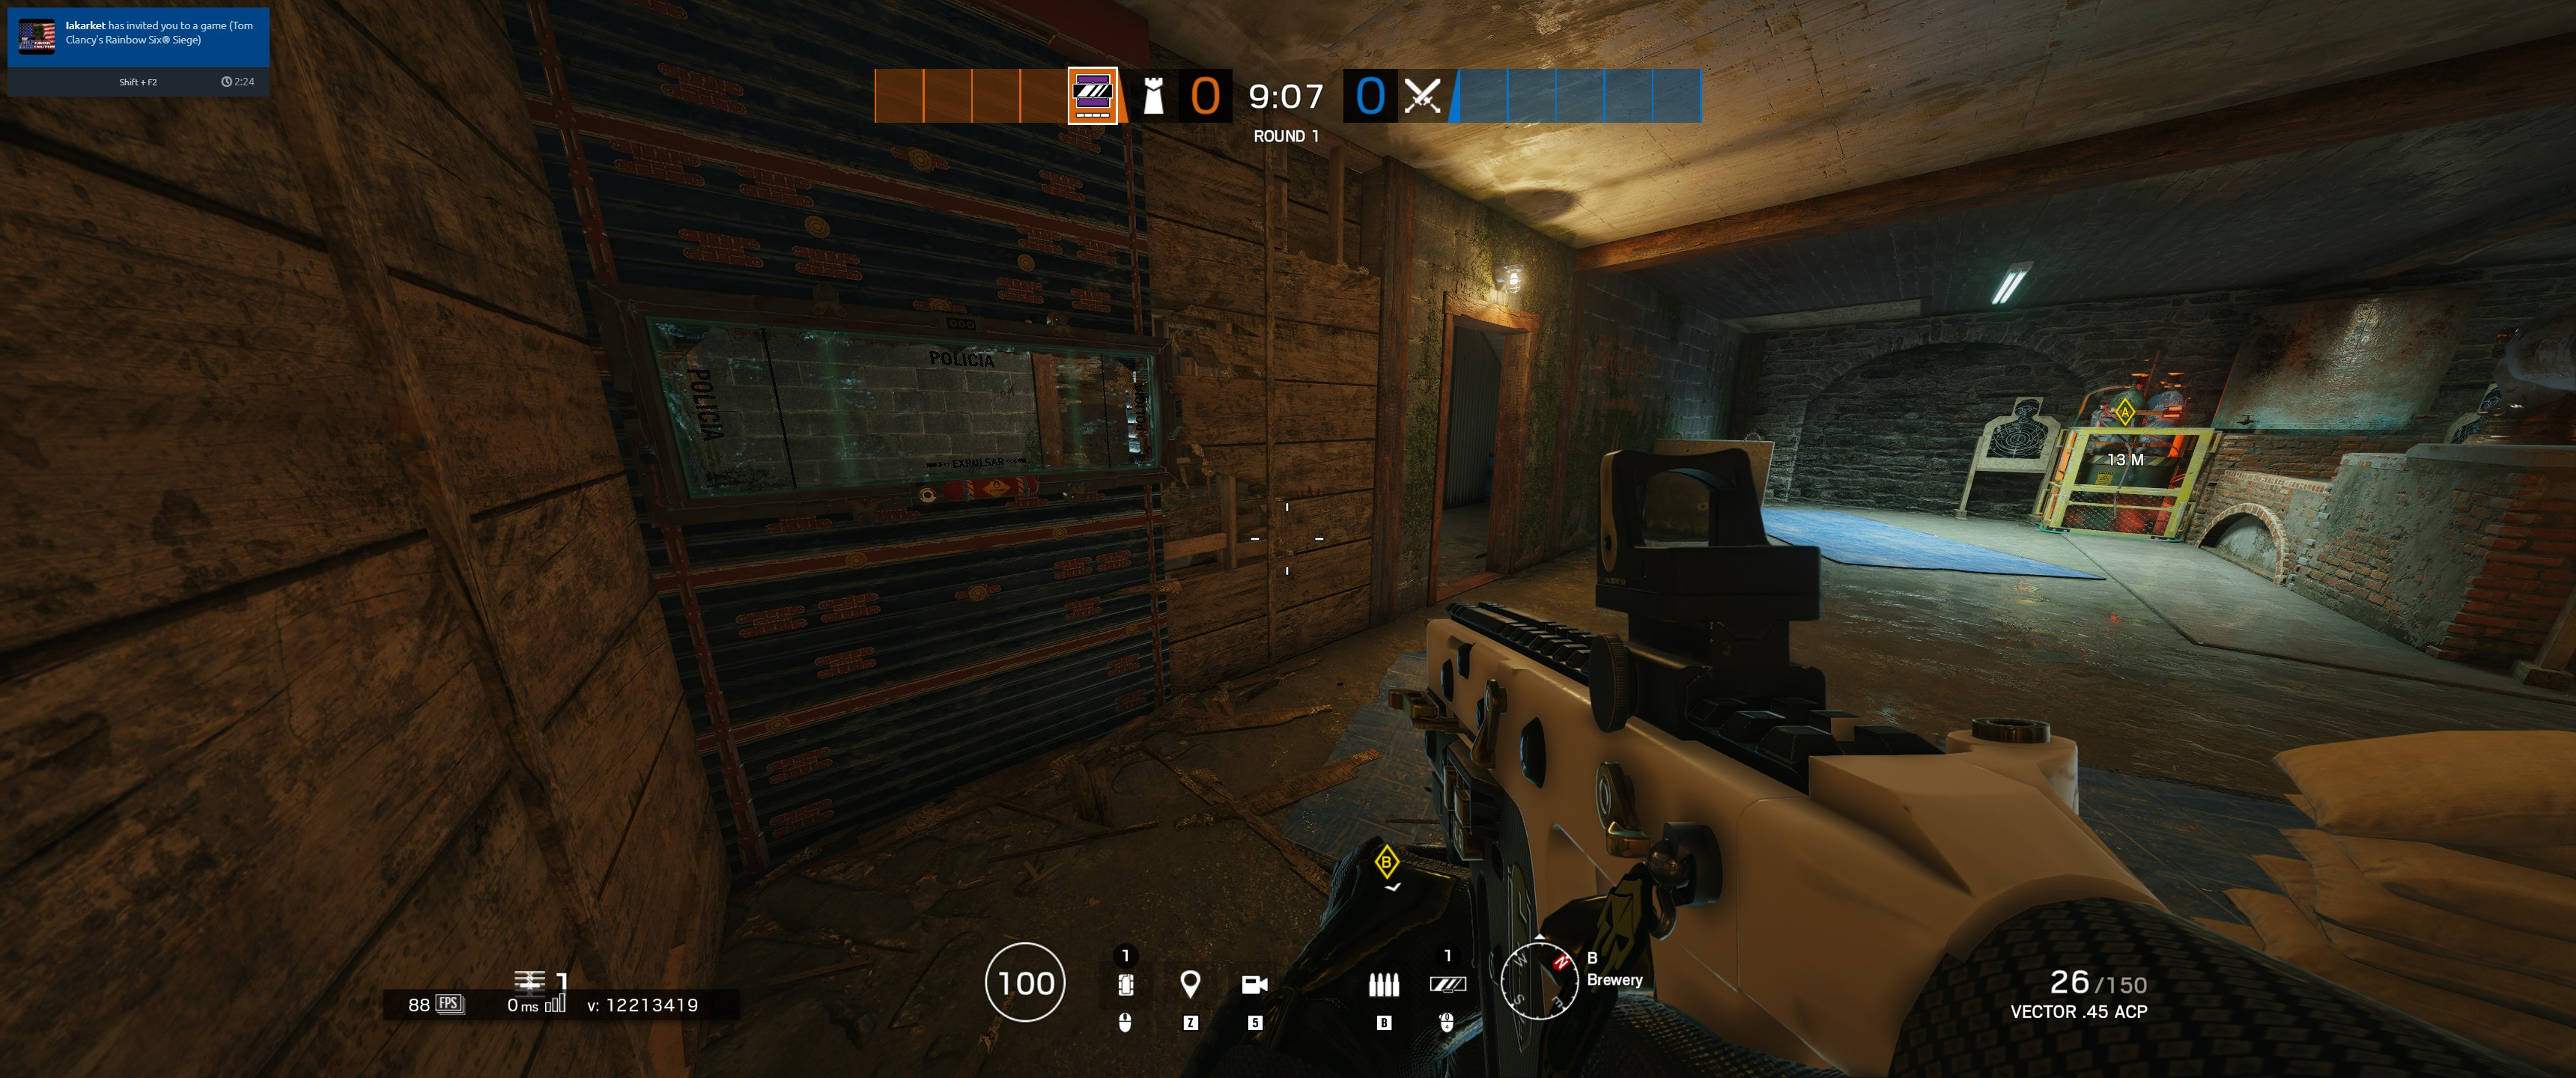 Steam Community :: Guide :: Viable Mira locations new Hereford